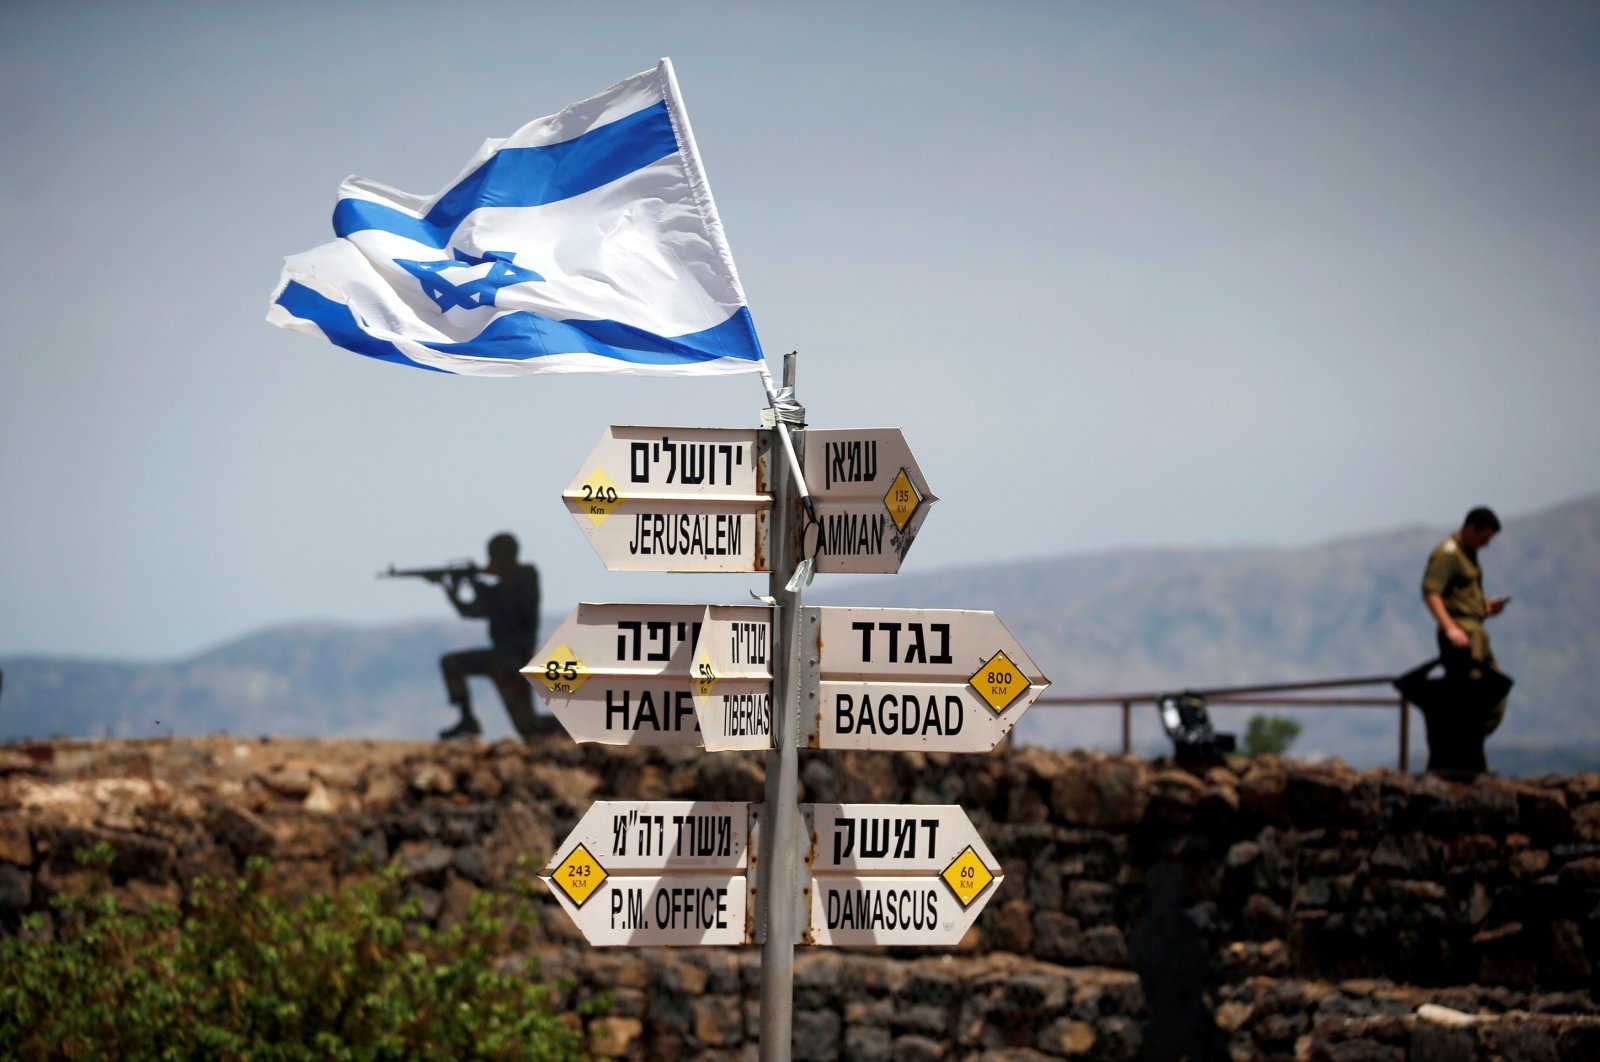 An Israeli soldier stands next to signs pointing out distances to different cities, on Mount Bental, an observation post that overlooks the Syrian side of the Quneitra crossing, Israeli-occupied Golan Heights, May 10, 2018. (Reuters Photo)